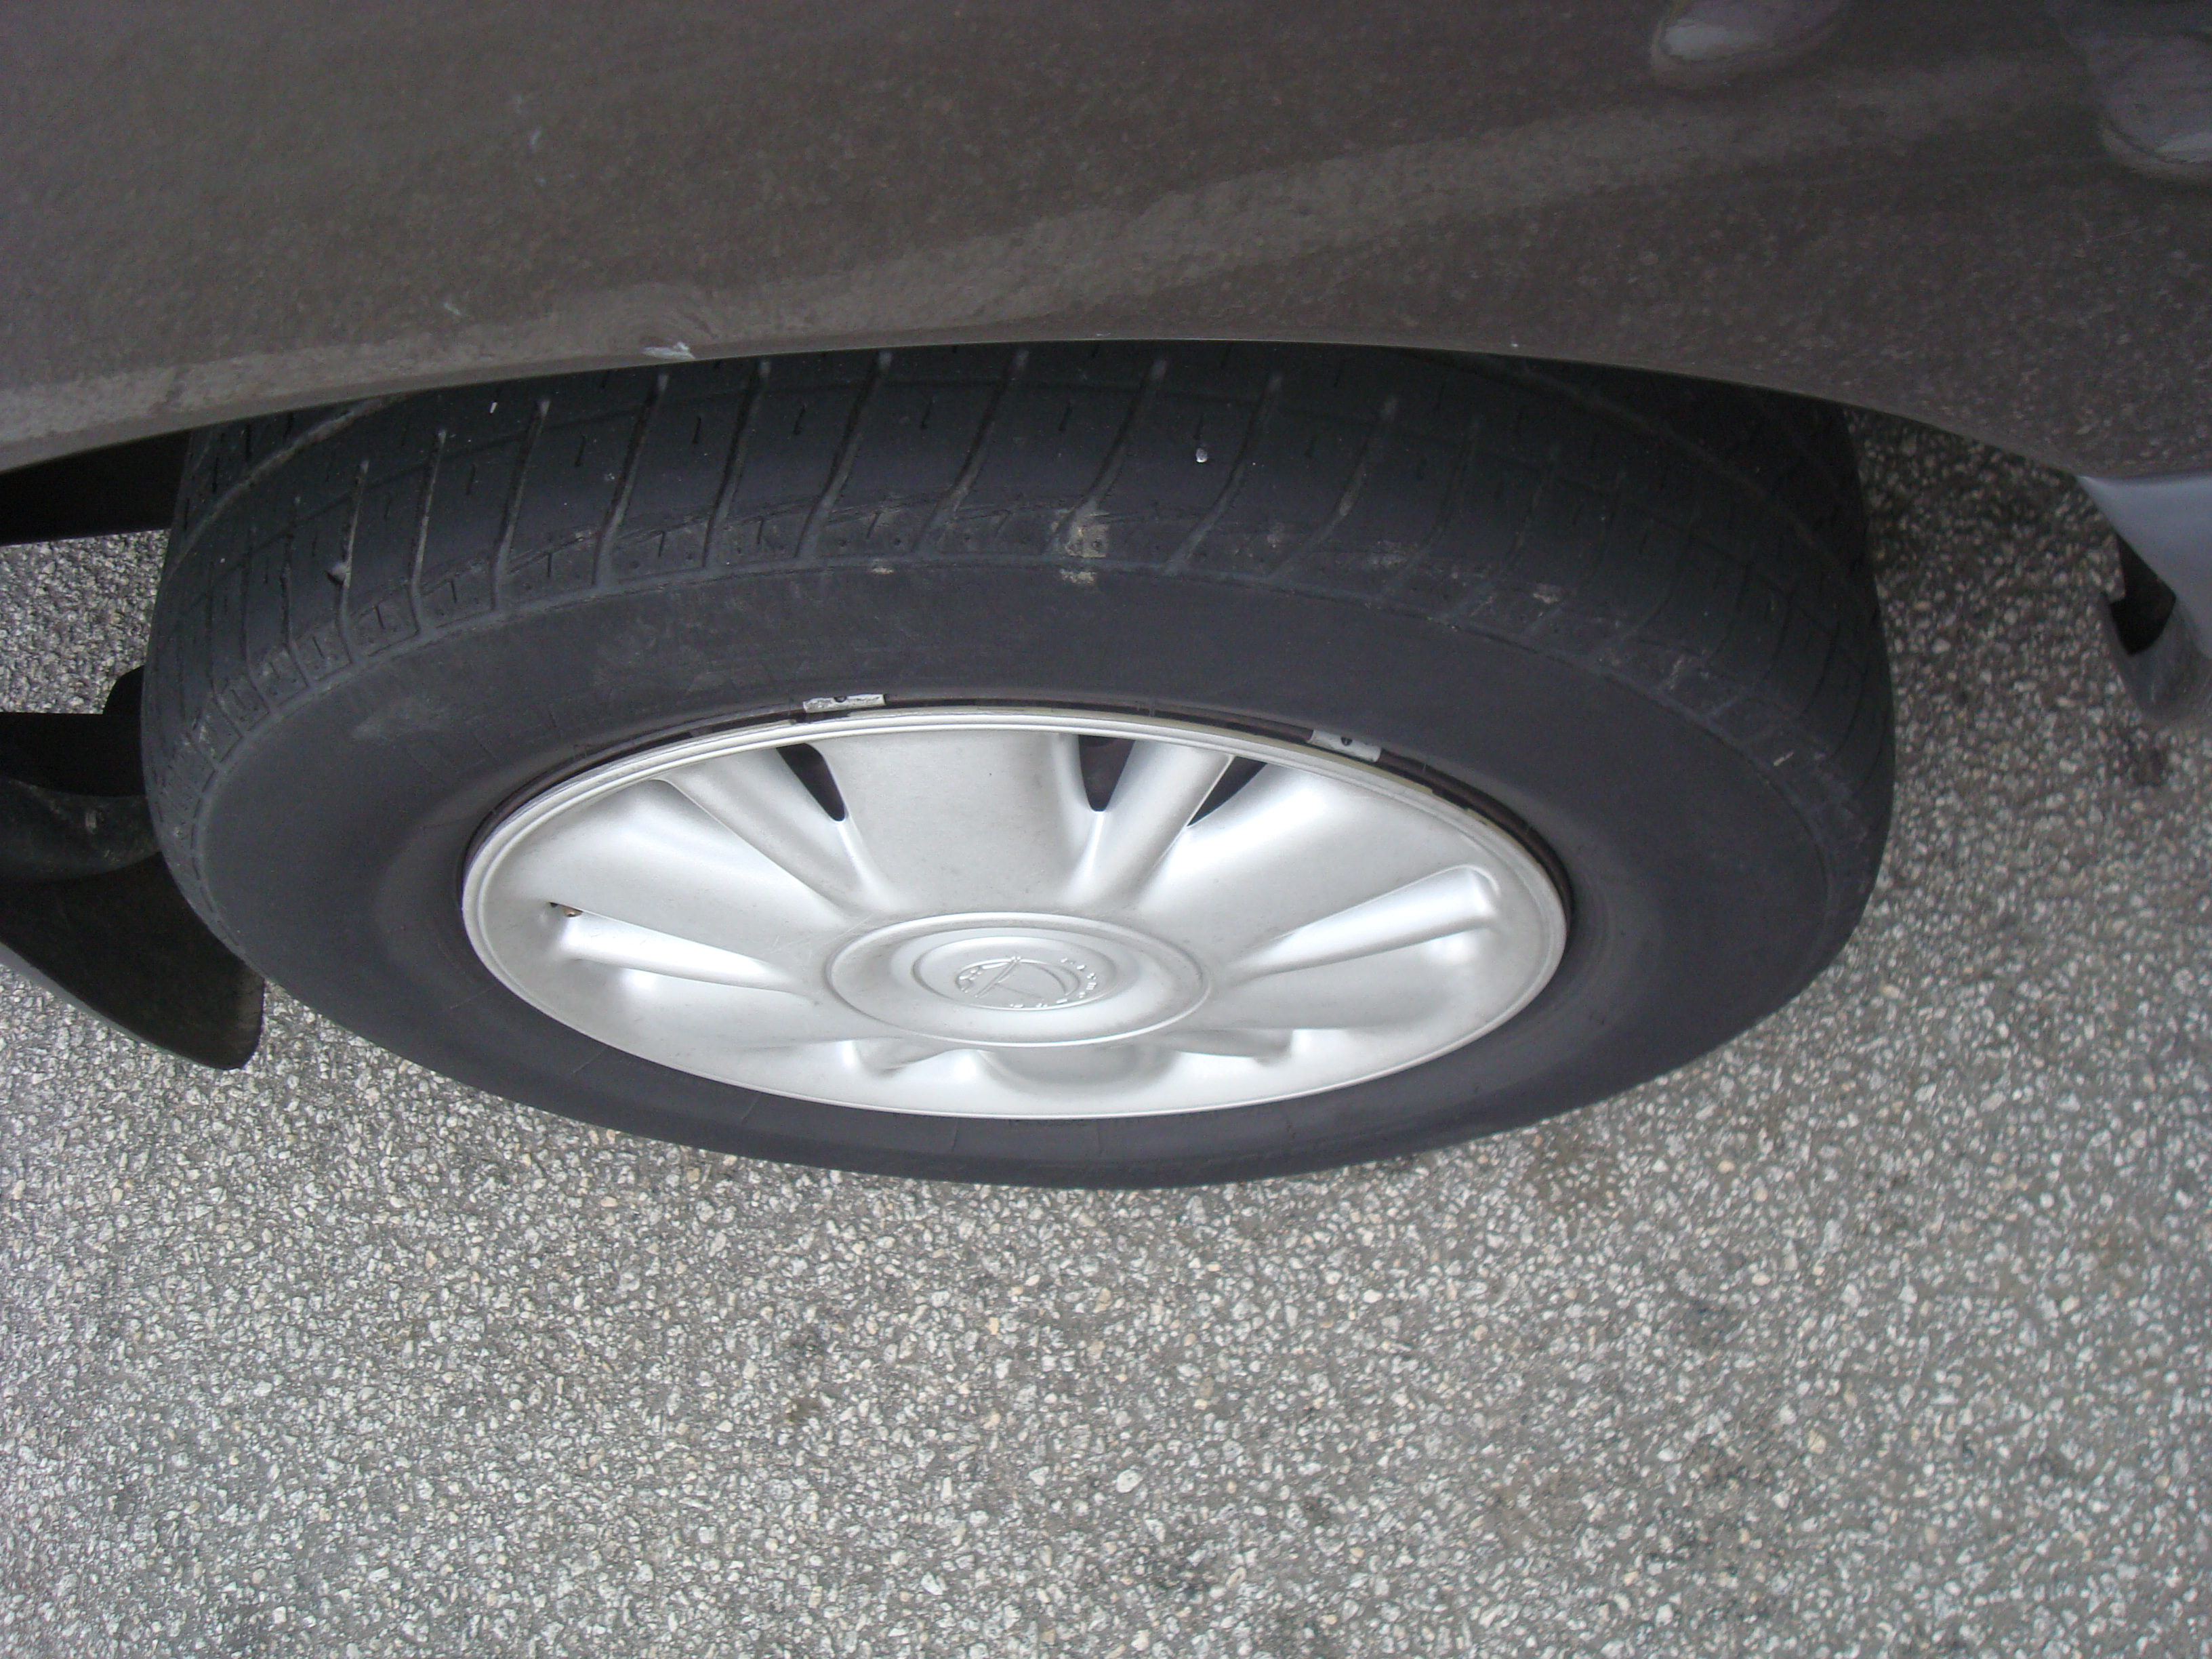 Nails and Flat Tires – may i ask you a question?